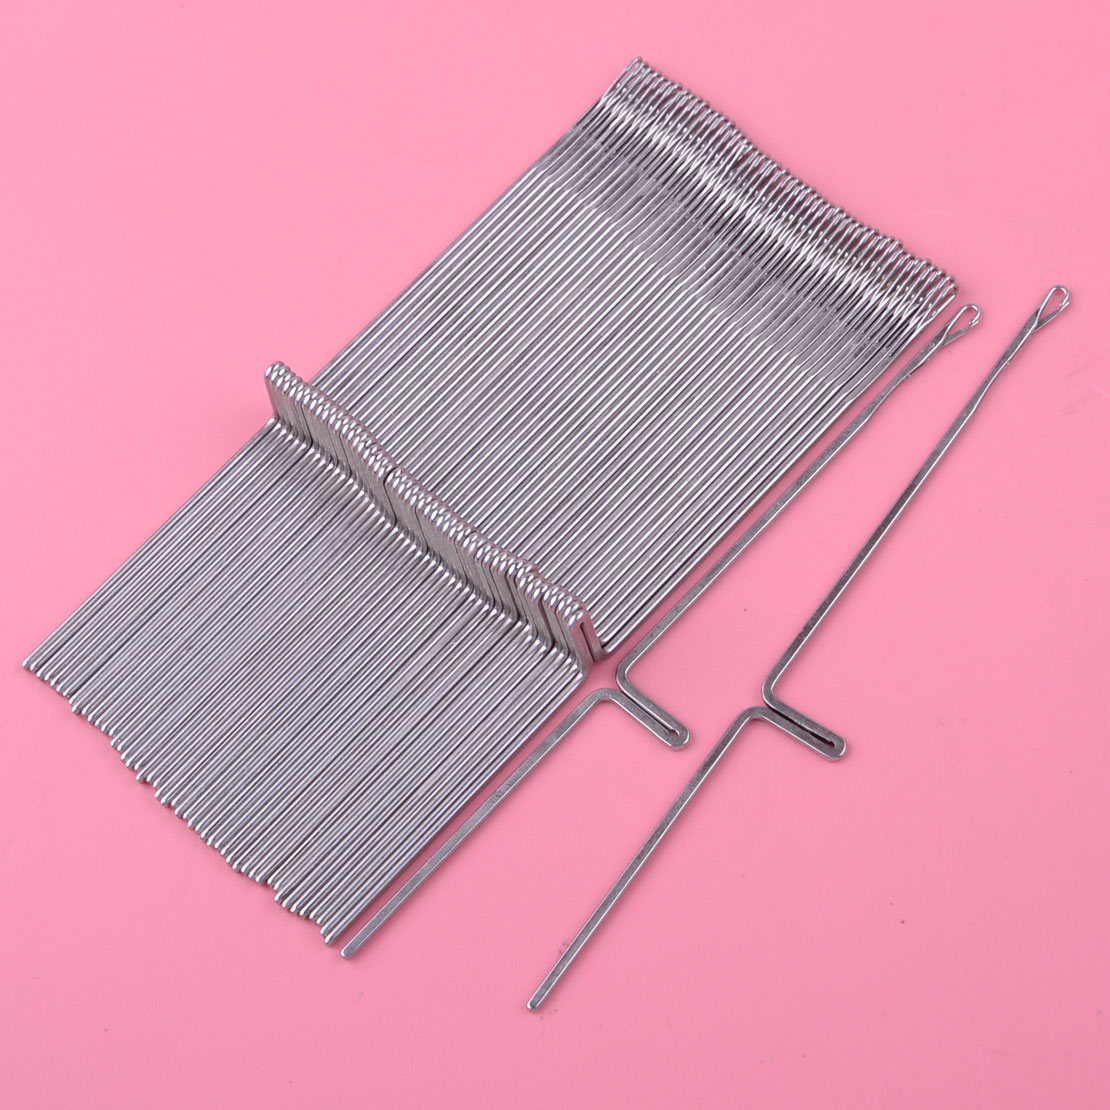 50pcs Knitting Machine Needles Fit For Silver Reed Studio Singer Empisal Knitmaster Ribbing Attachment SRP50 SRP60 SRP60N